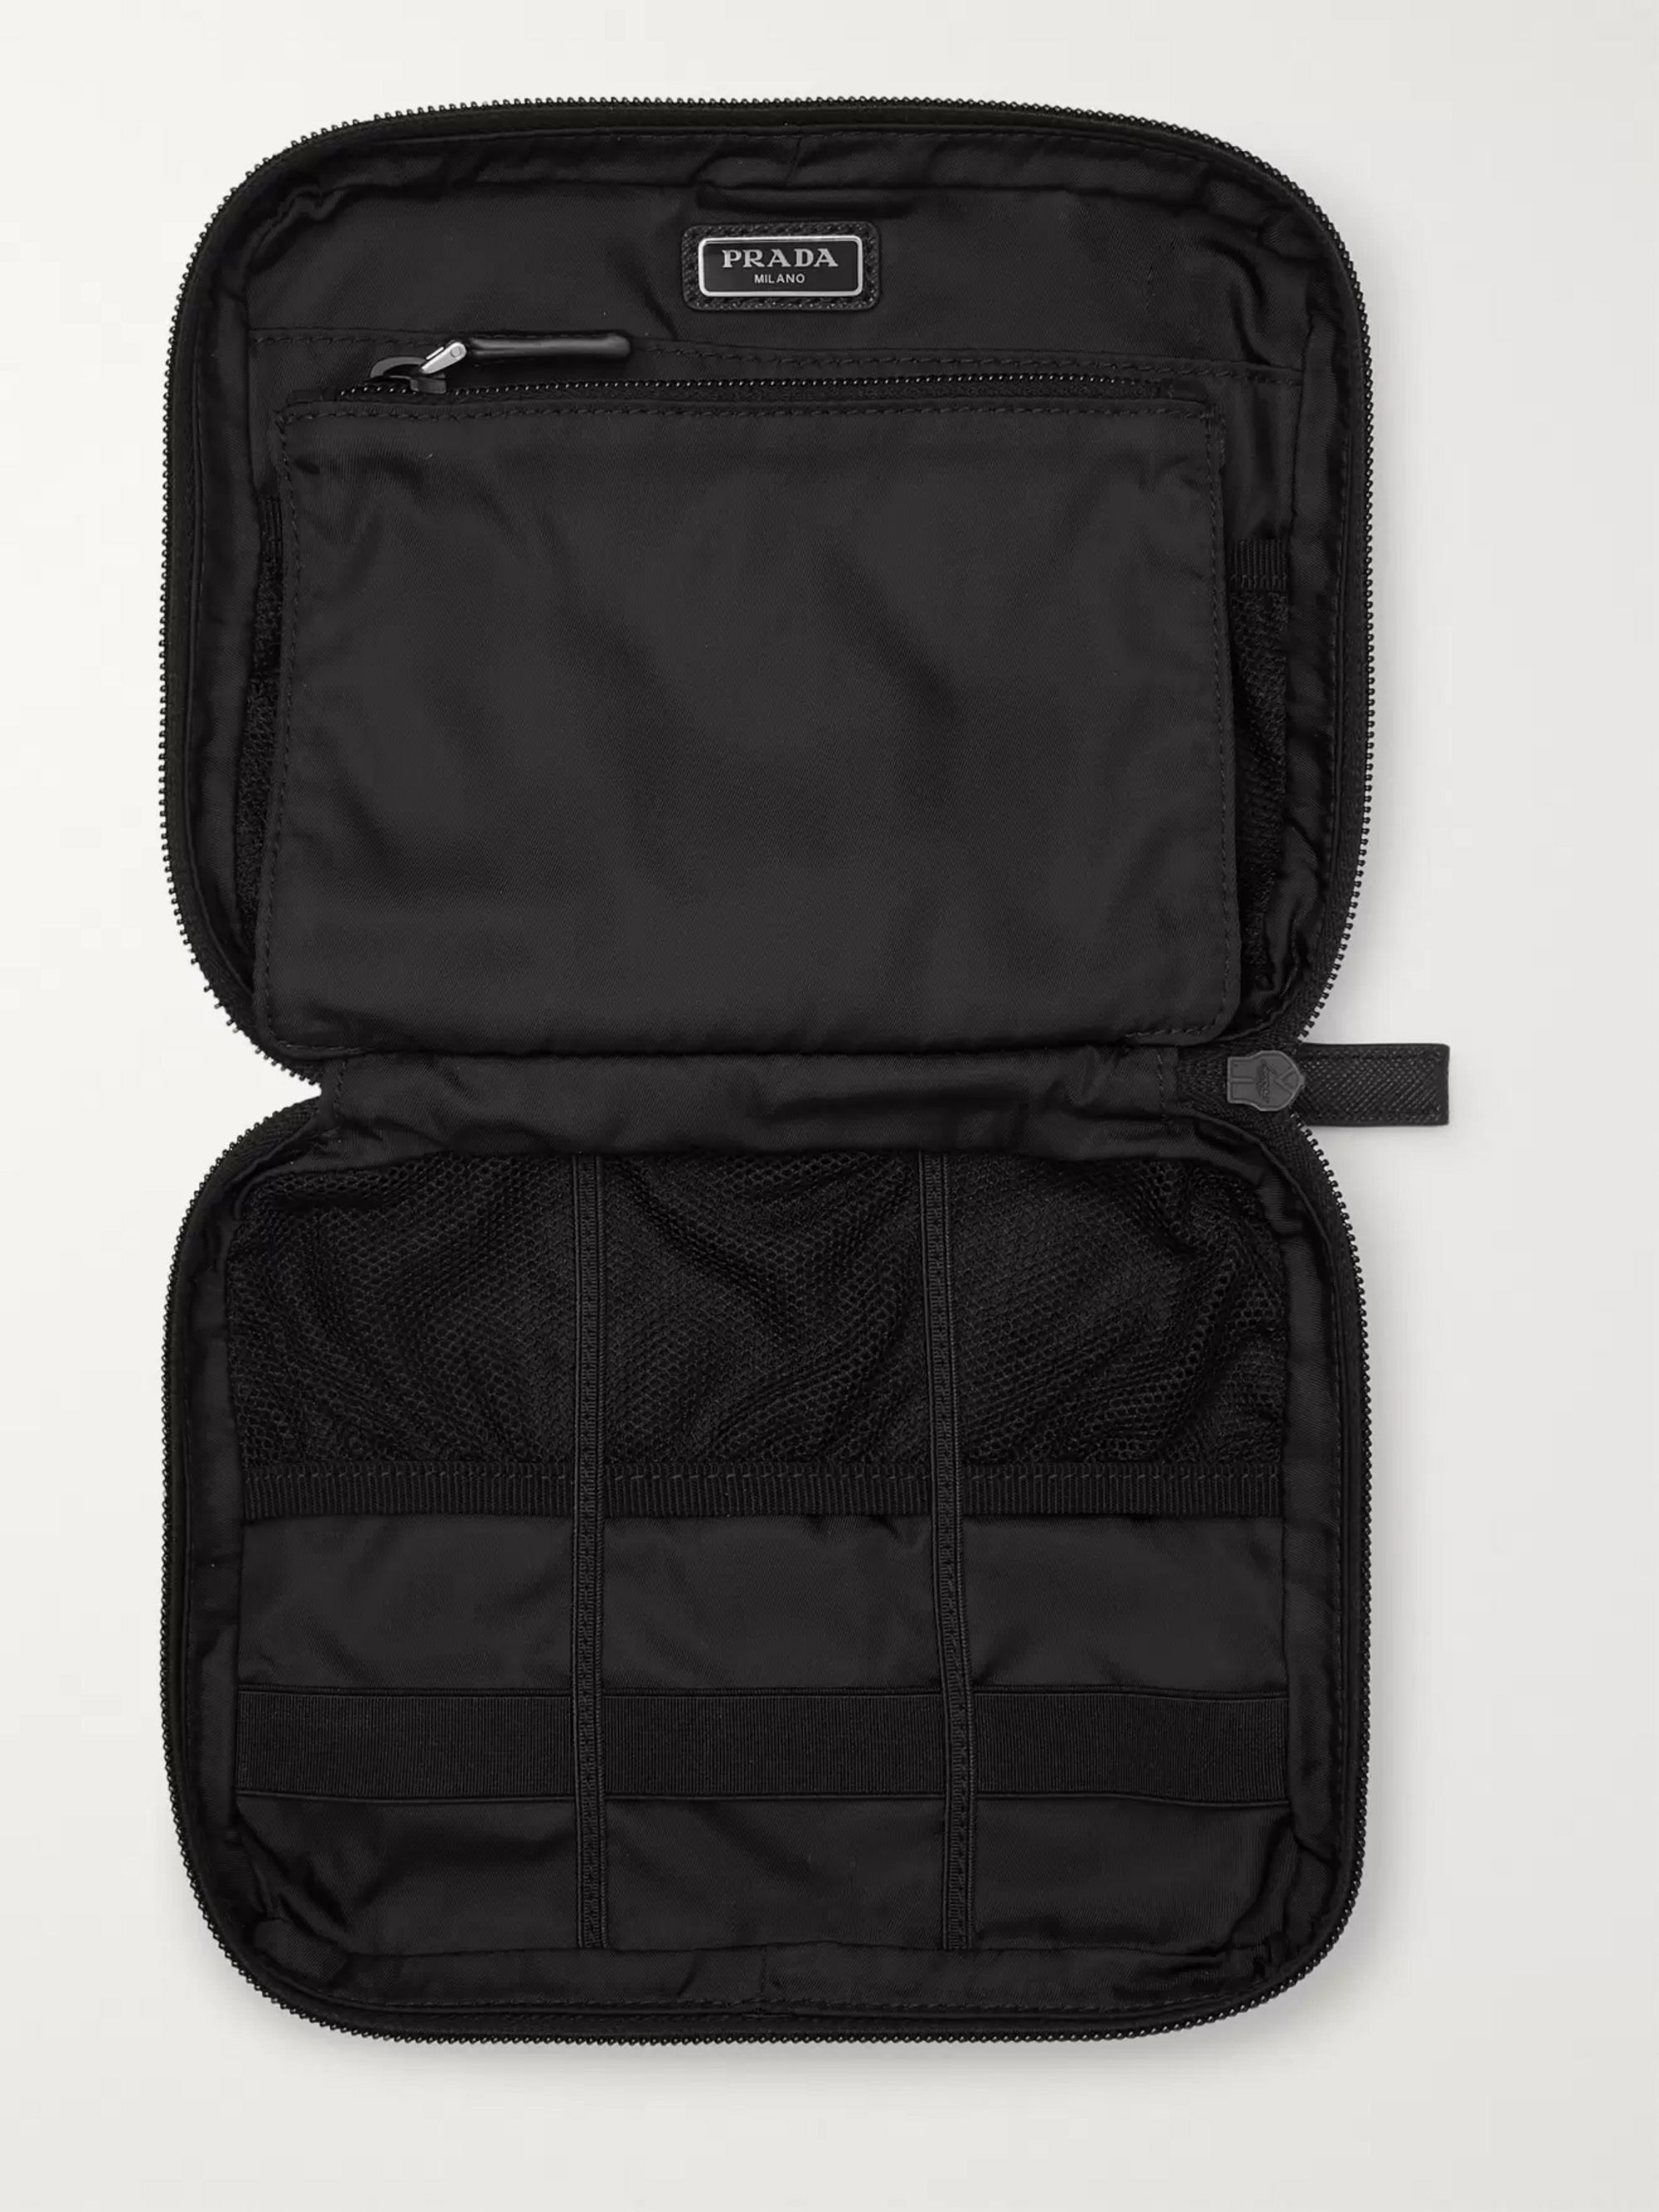 Prada Nylon Tech Case